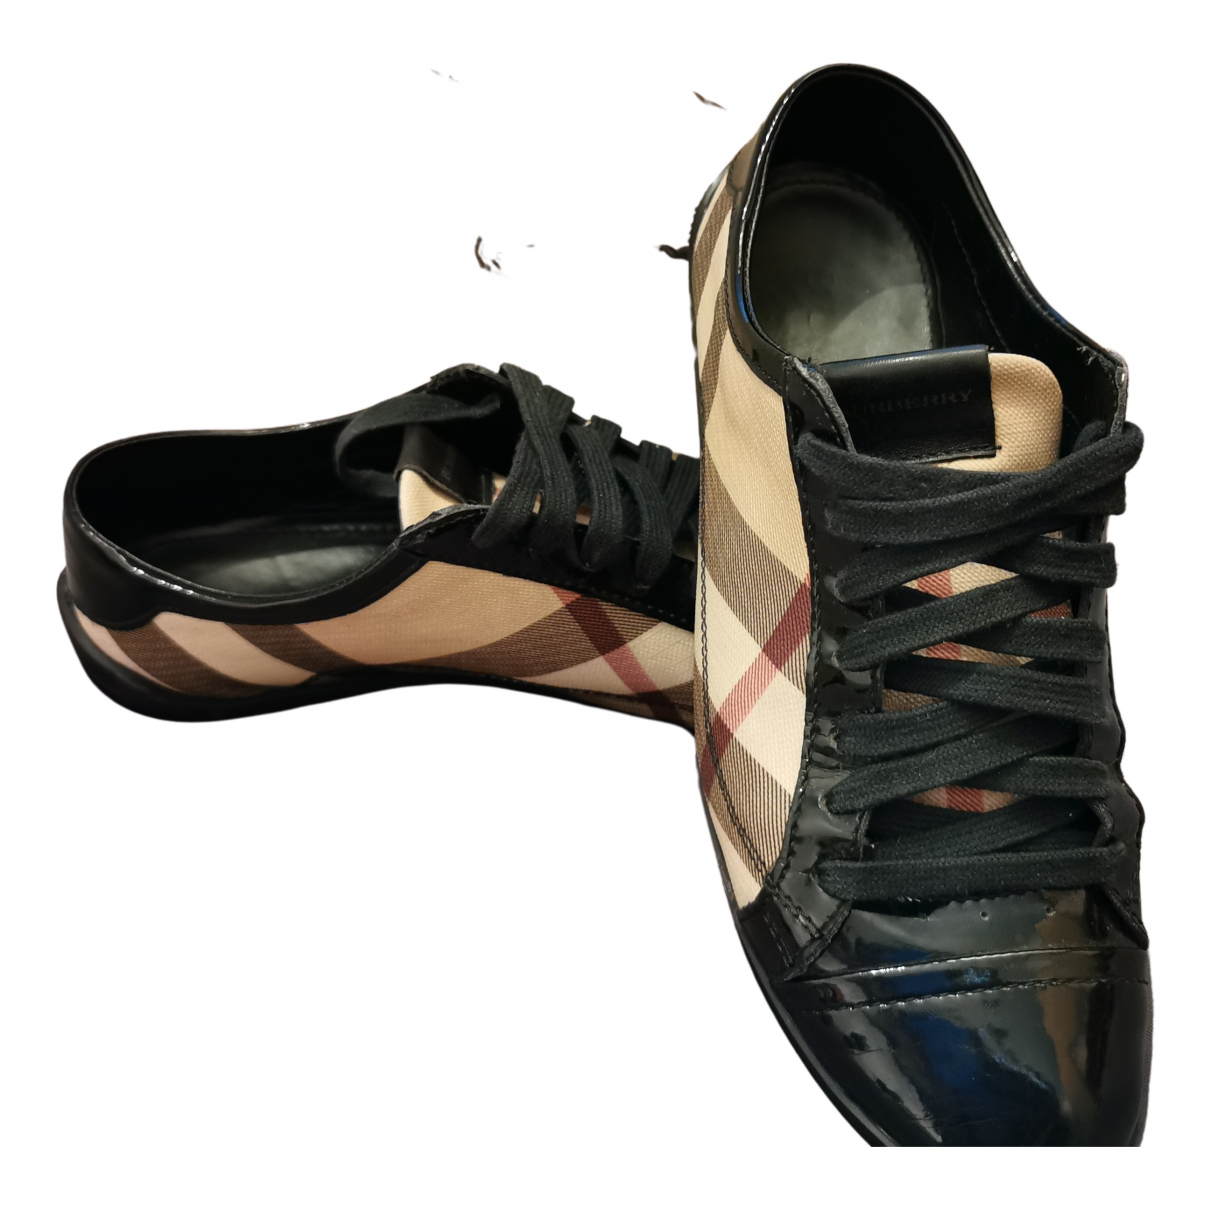 Burberry N Beige Leather Trainers for Women 37 EU